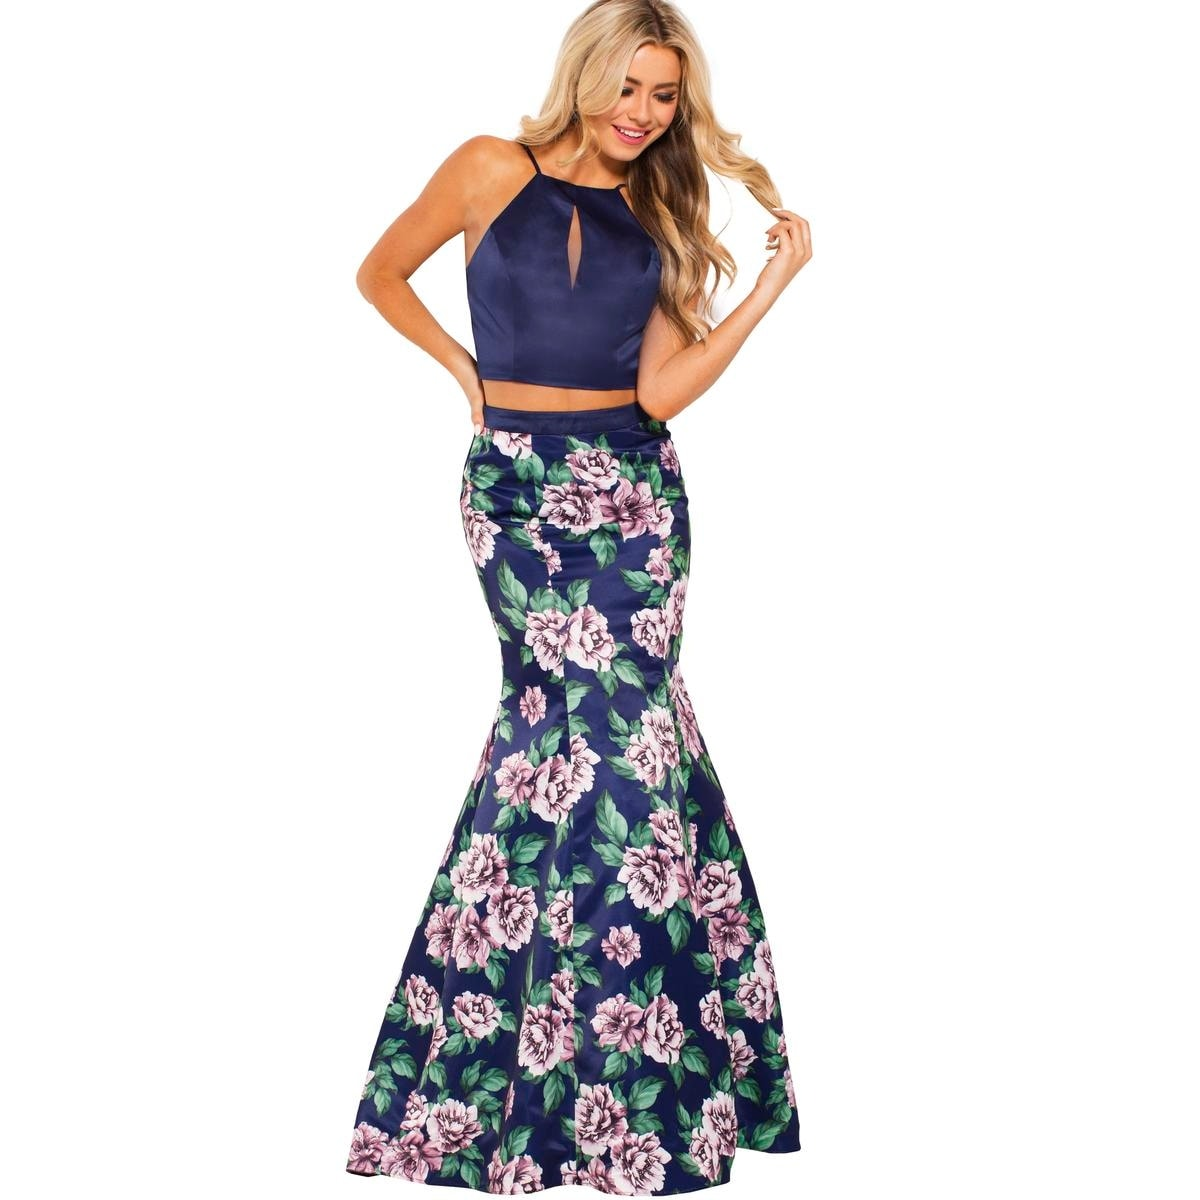 42717398720fb2 Shop JVN by Jovani Womens 59138A Crop Top Dress Prom Two Piece - Free  Shipping Today - Overstock - 26639849